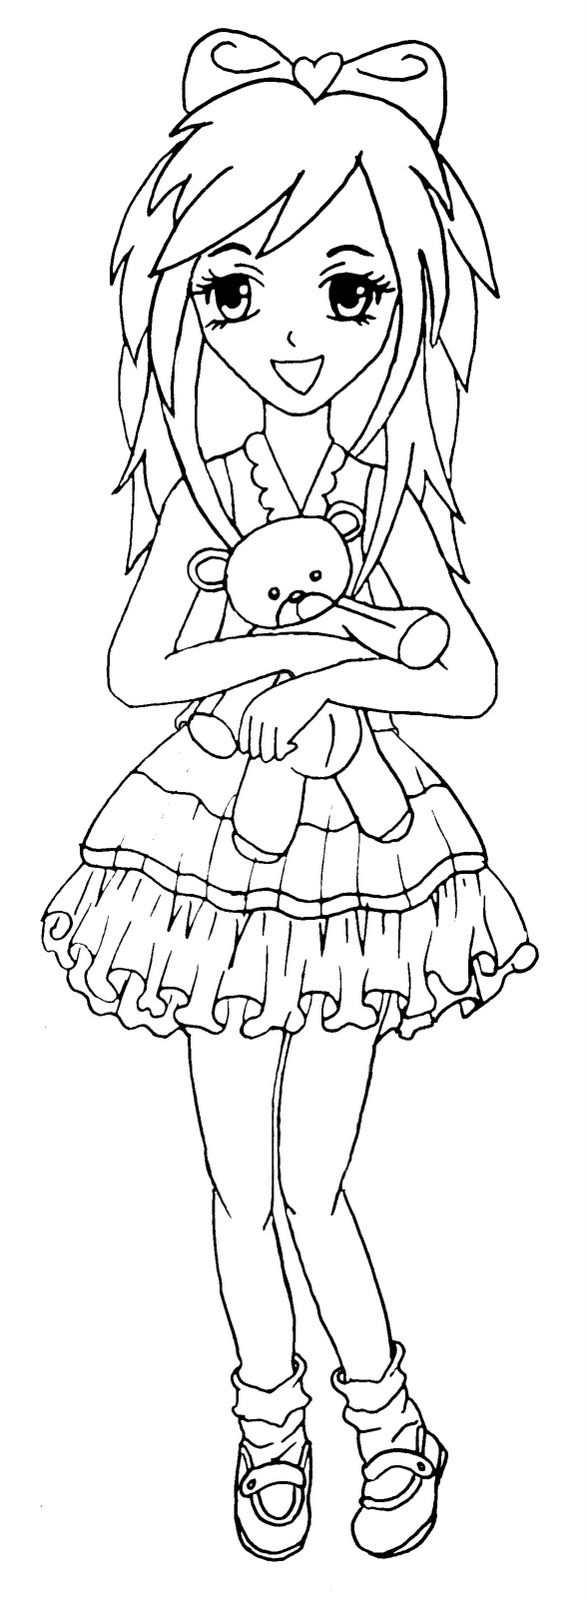 Ever After High Getting Fairest Madeline Coloring Page Free Lovely 285 Best Therapy Images On Pinterest